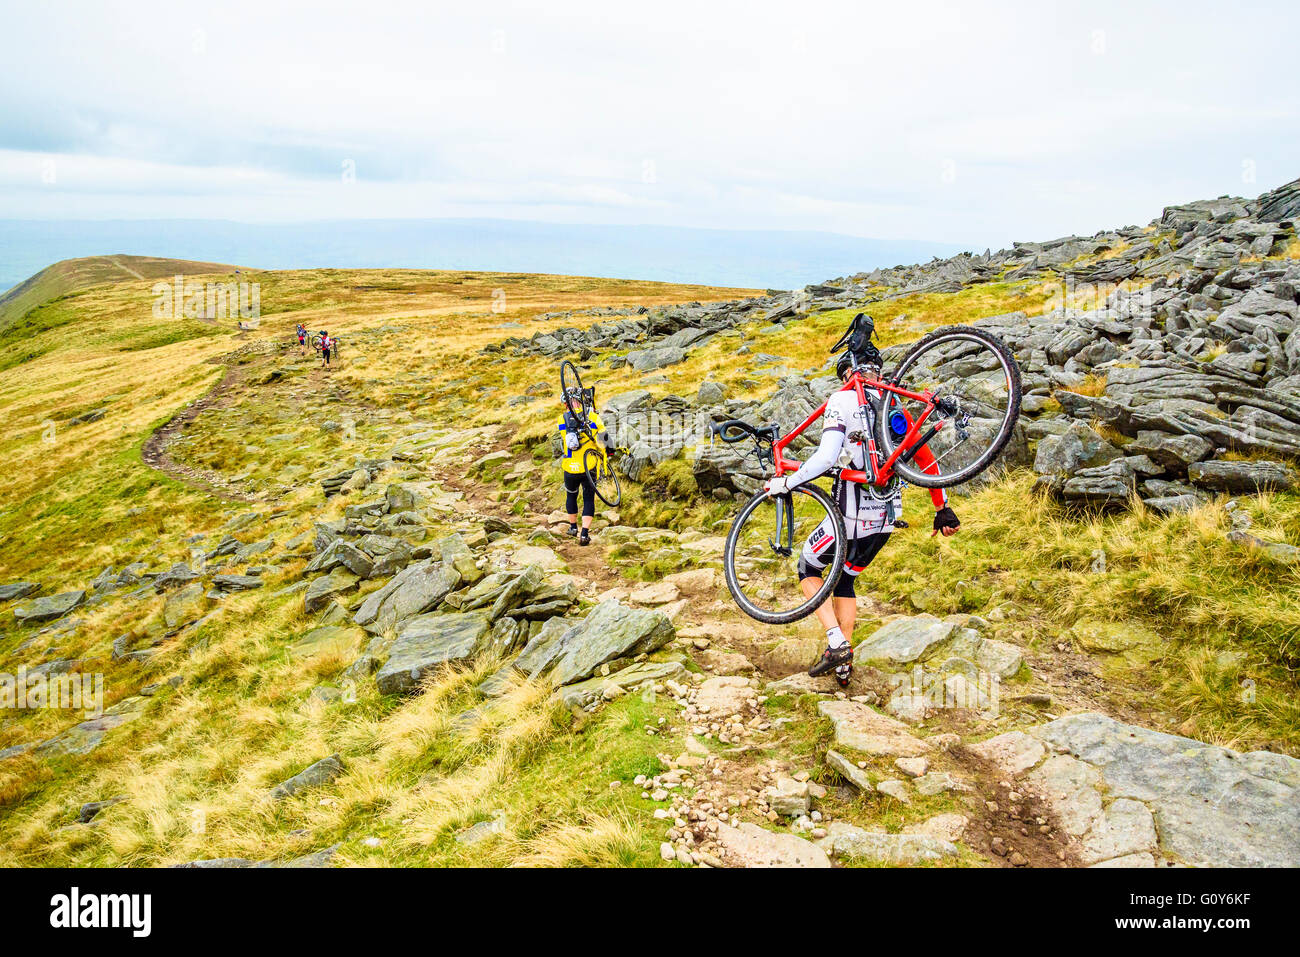 Riders descending Ingleborough in the 2015 Three Peaks cyclocross race, an annual event over three Yorkshire mountains - Stock Image